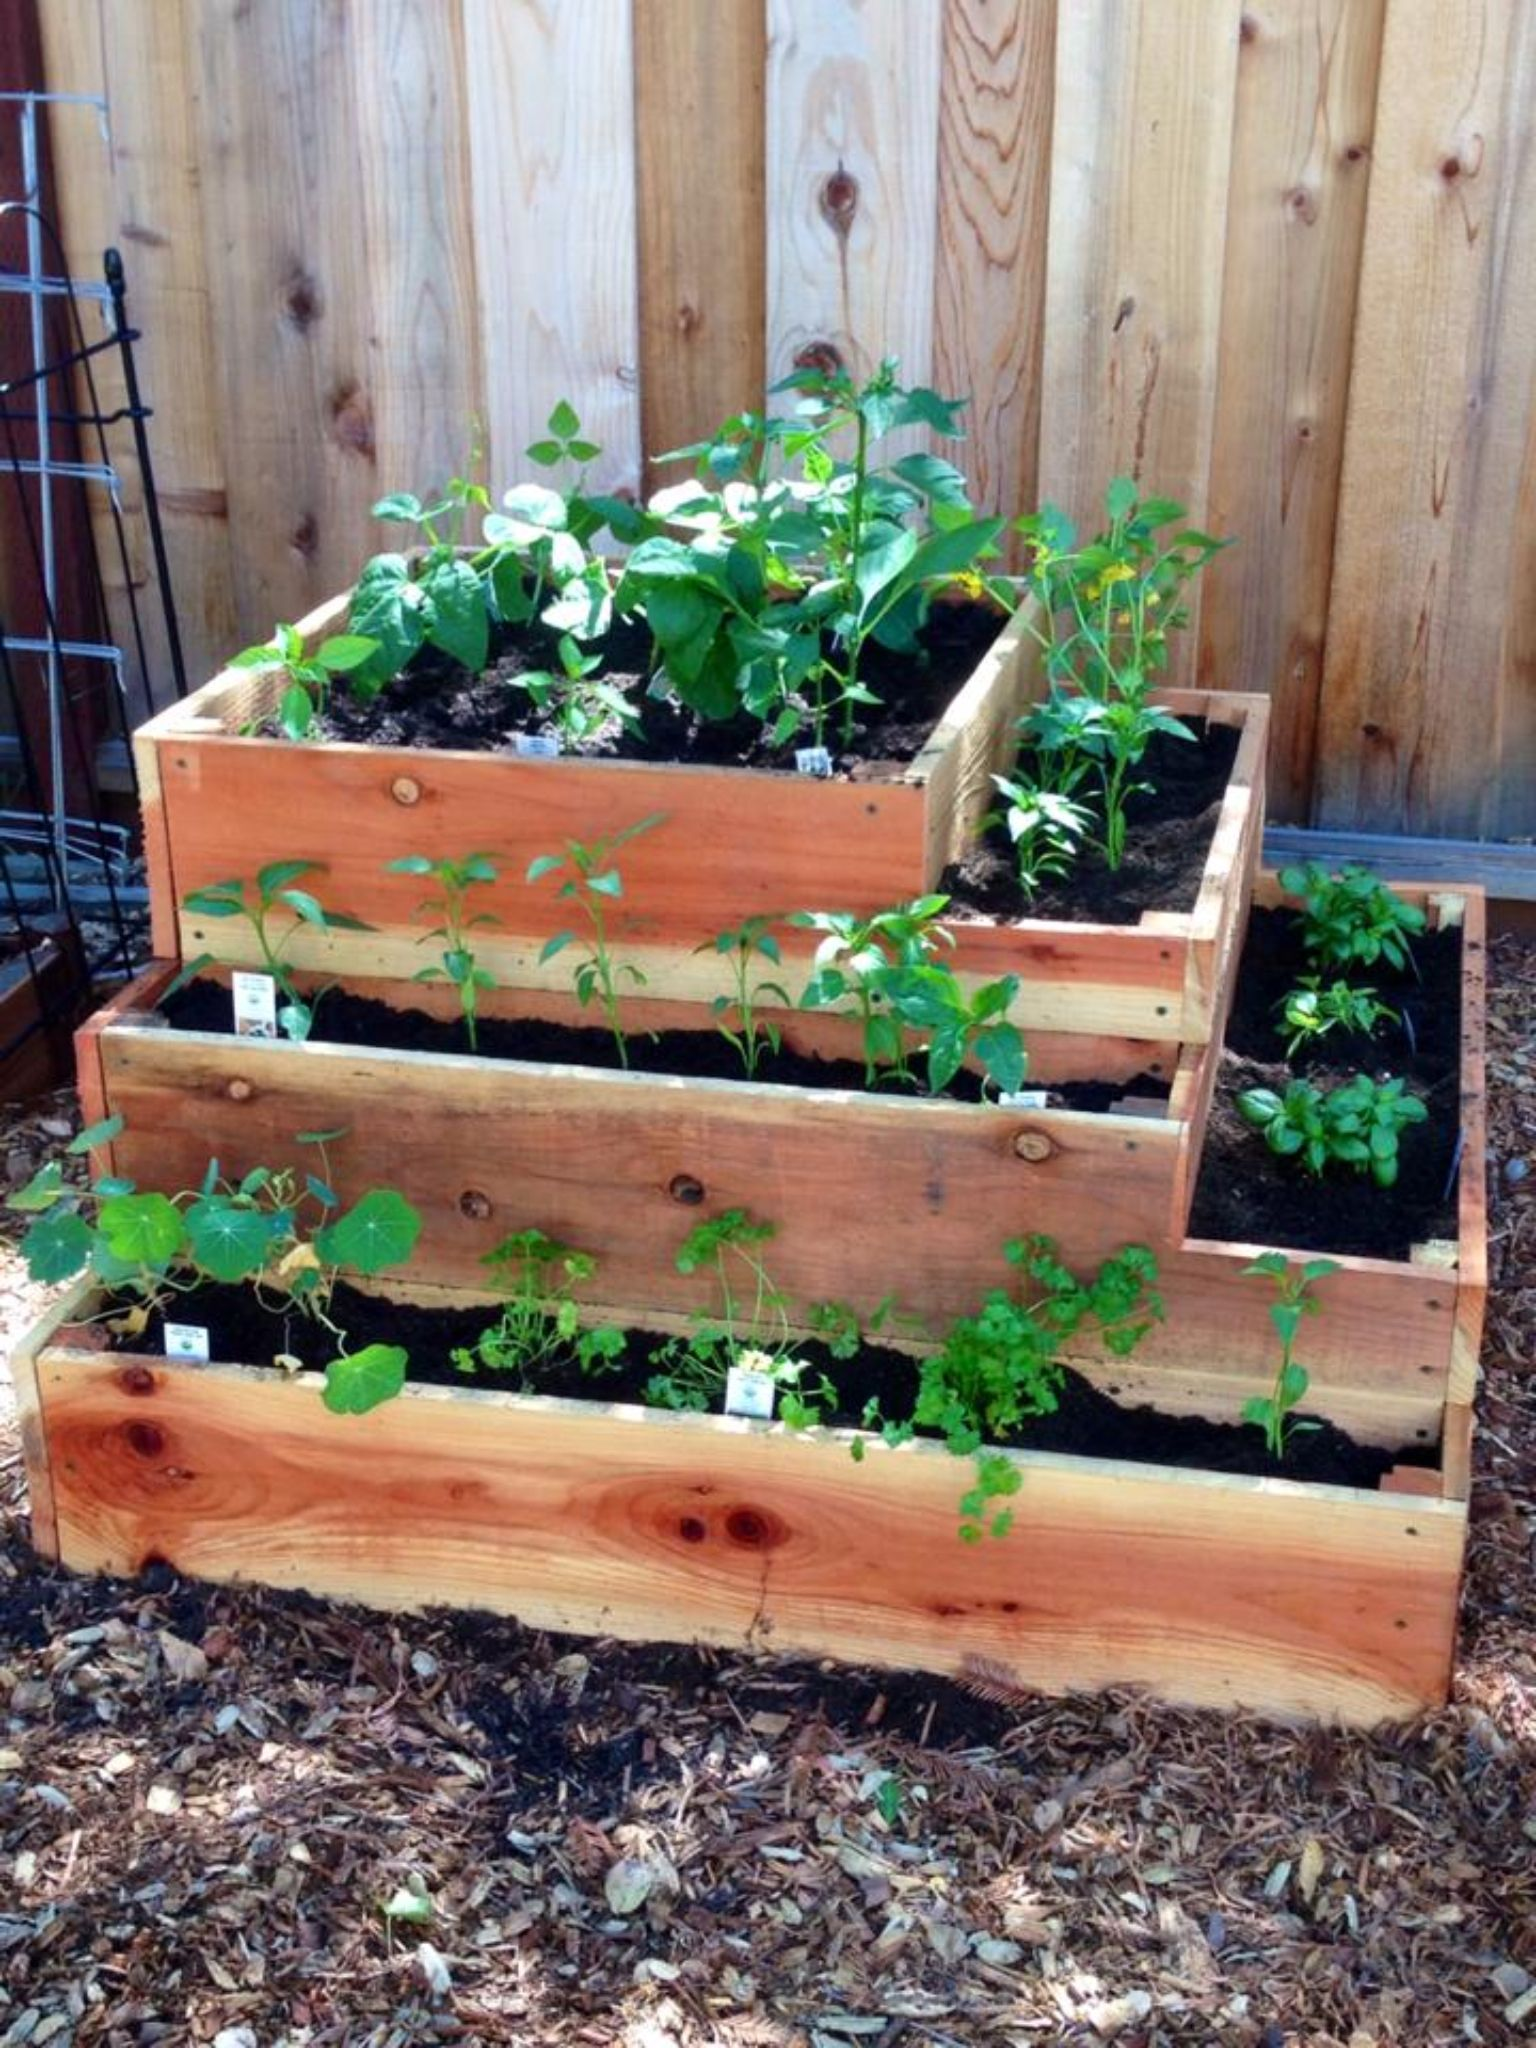 my new tiered garden planter, built from redwood fencing. easy